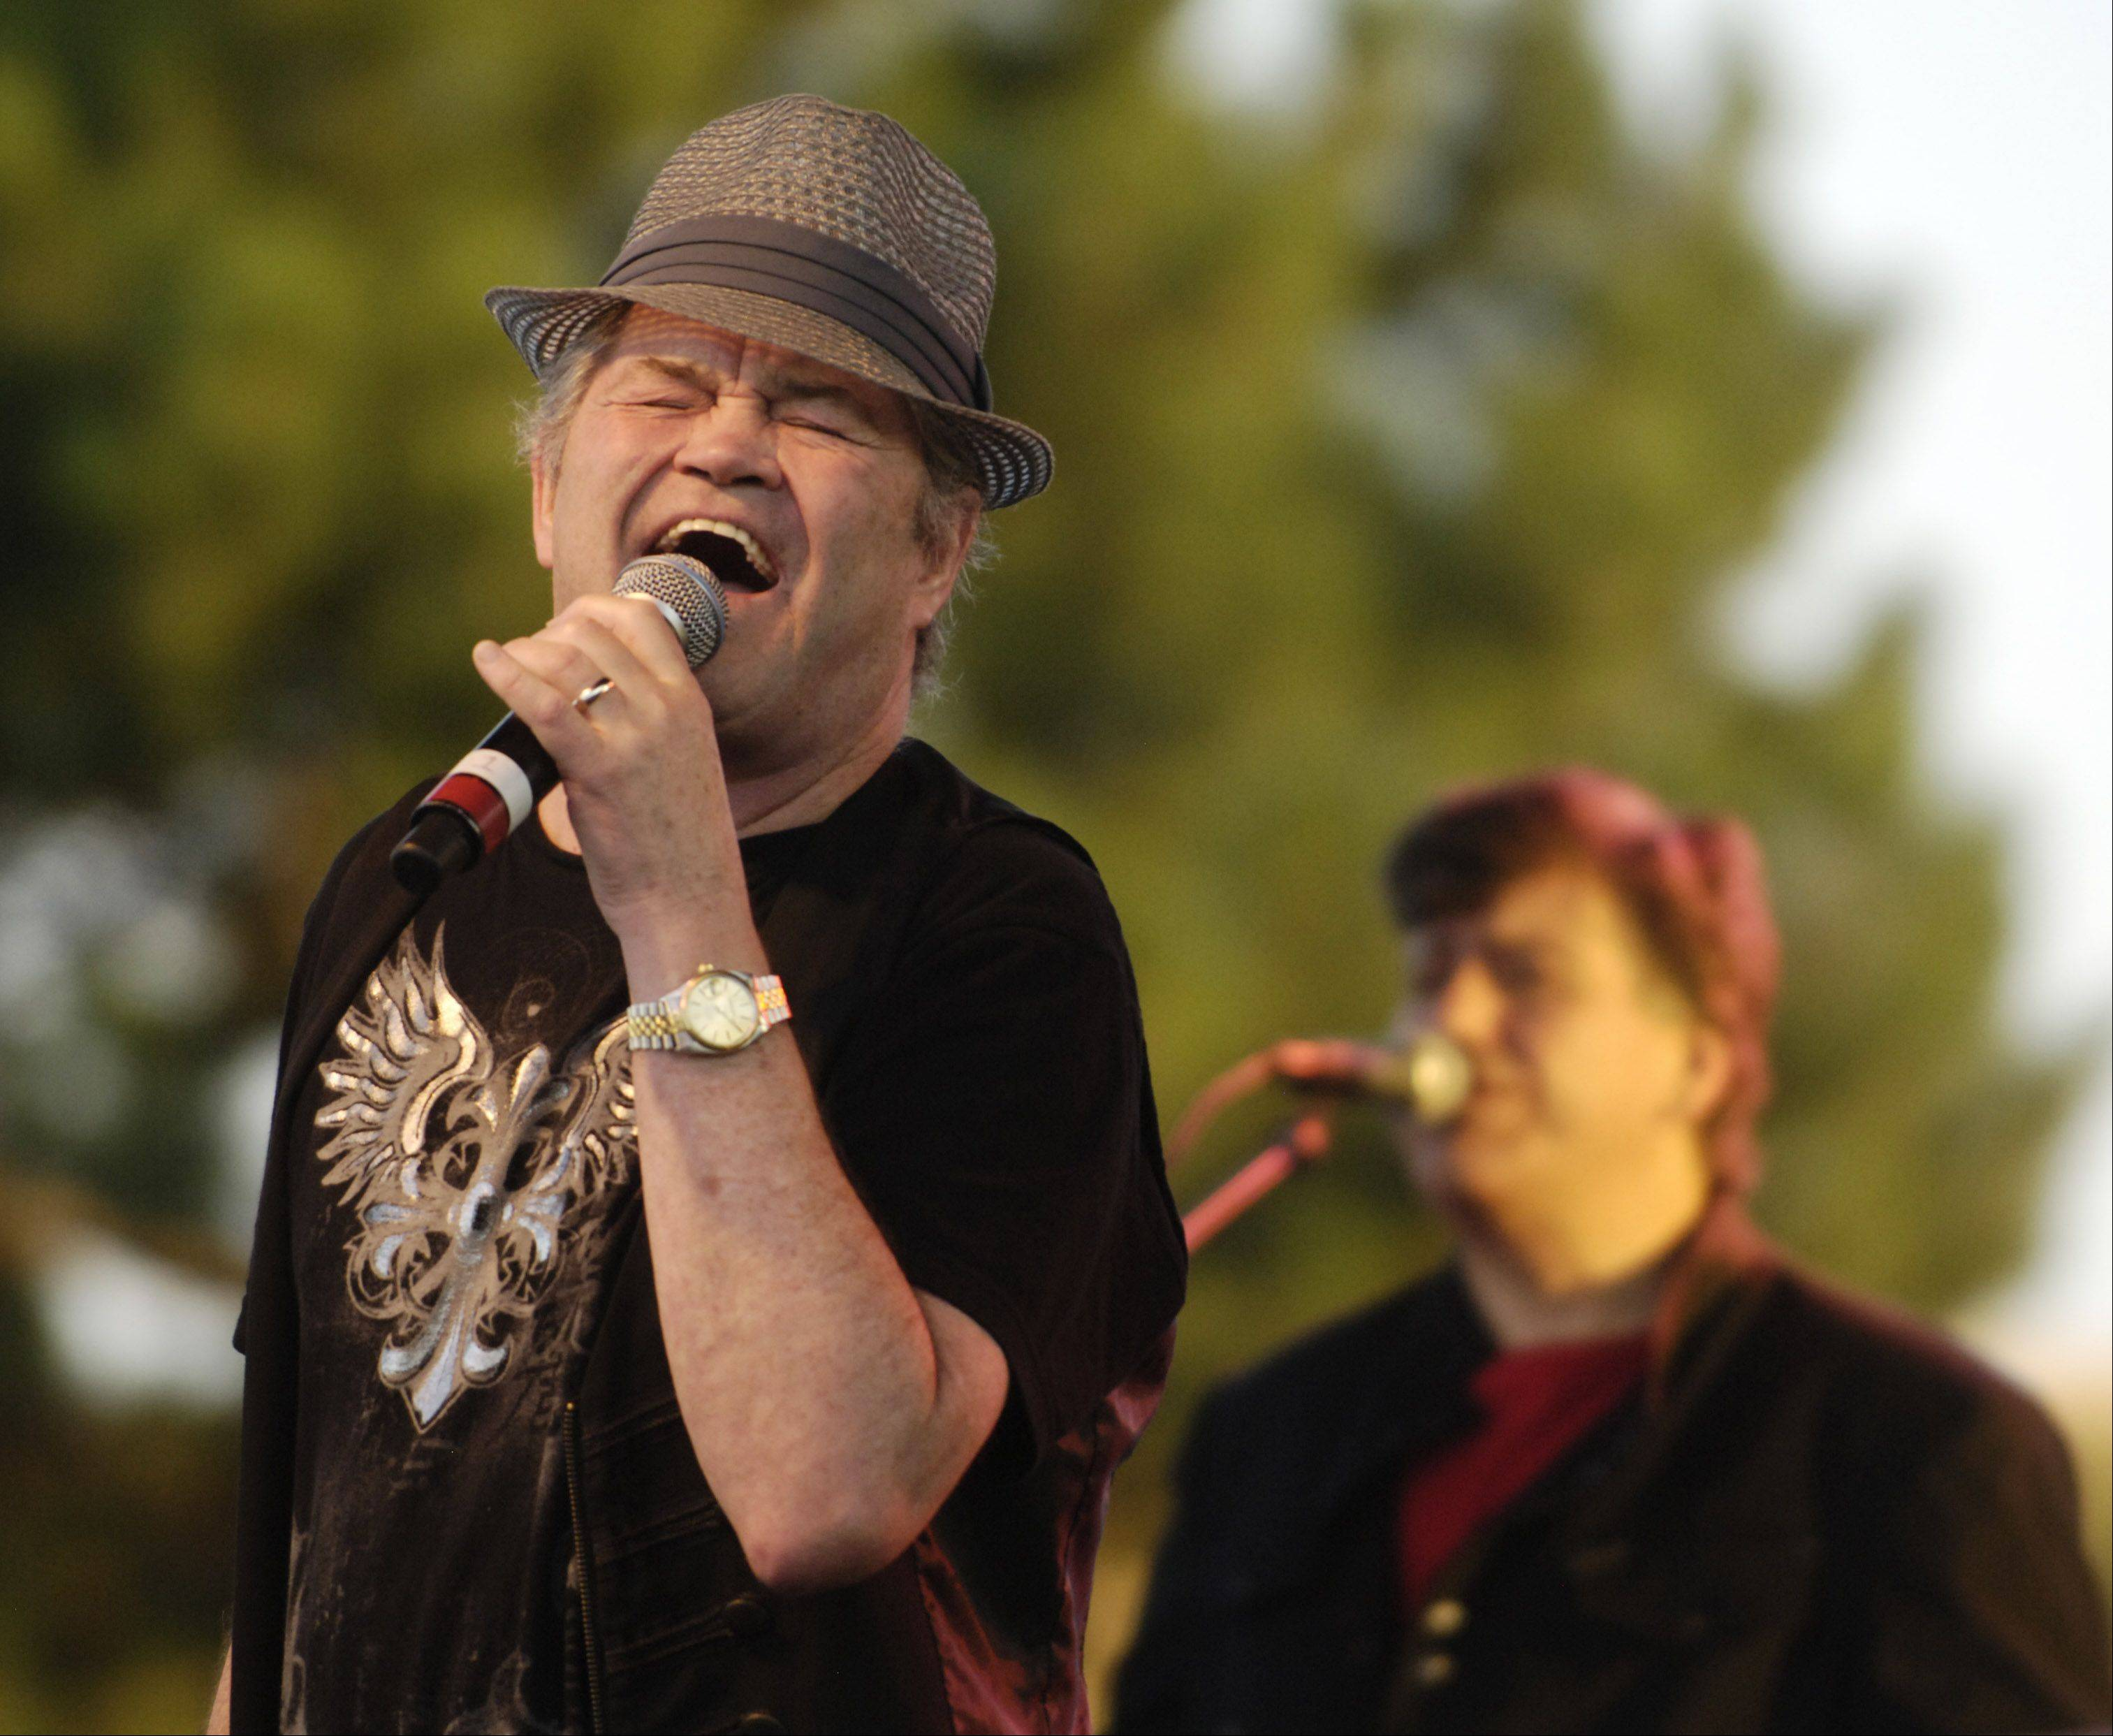 Micky Dolenz of The Monkees performs Tuesday evening as part of the summer concert series on the Elk Grove Village Green.